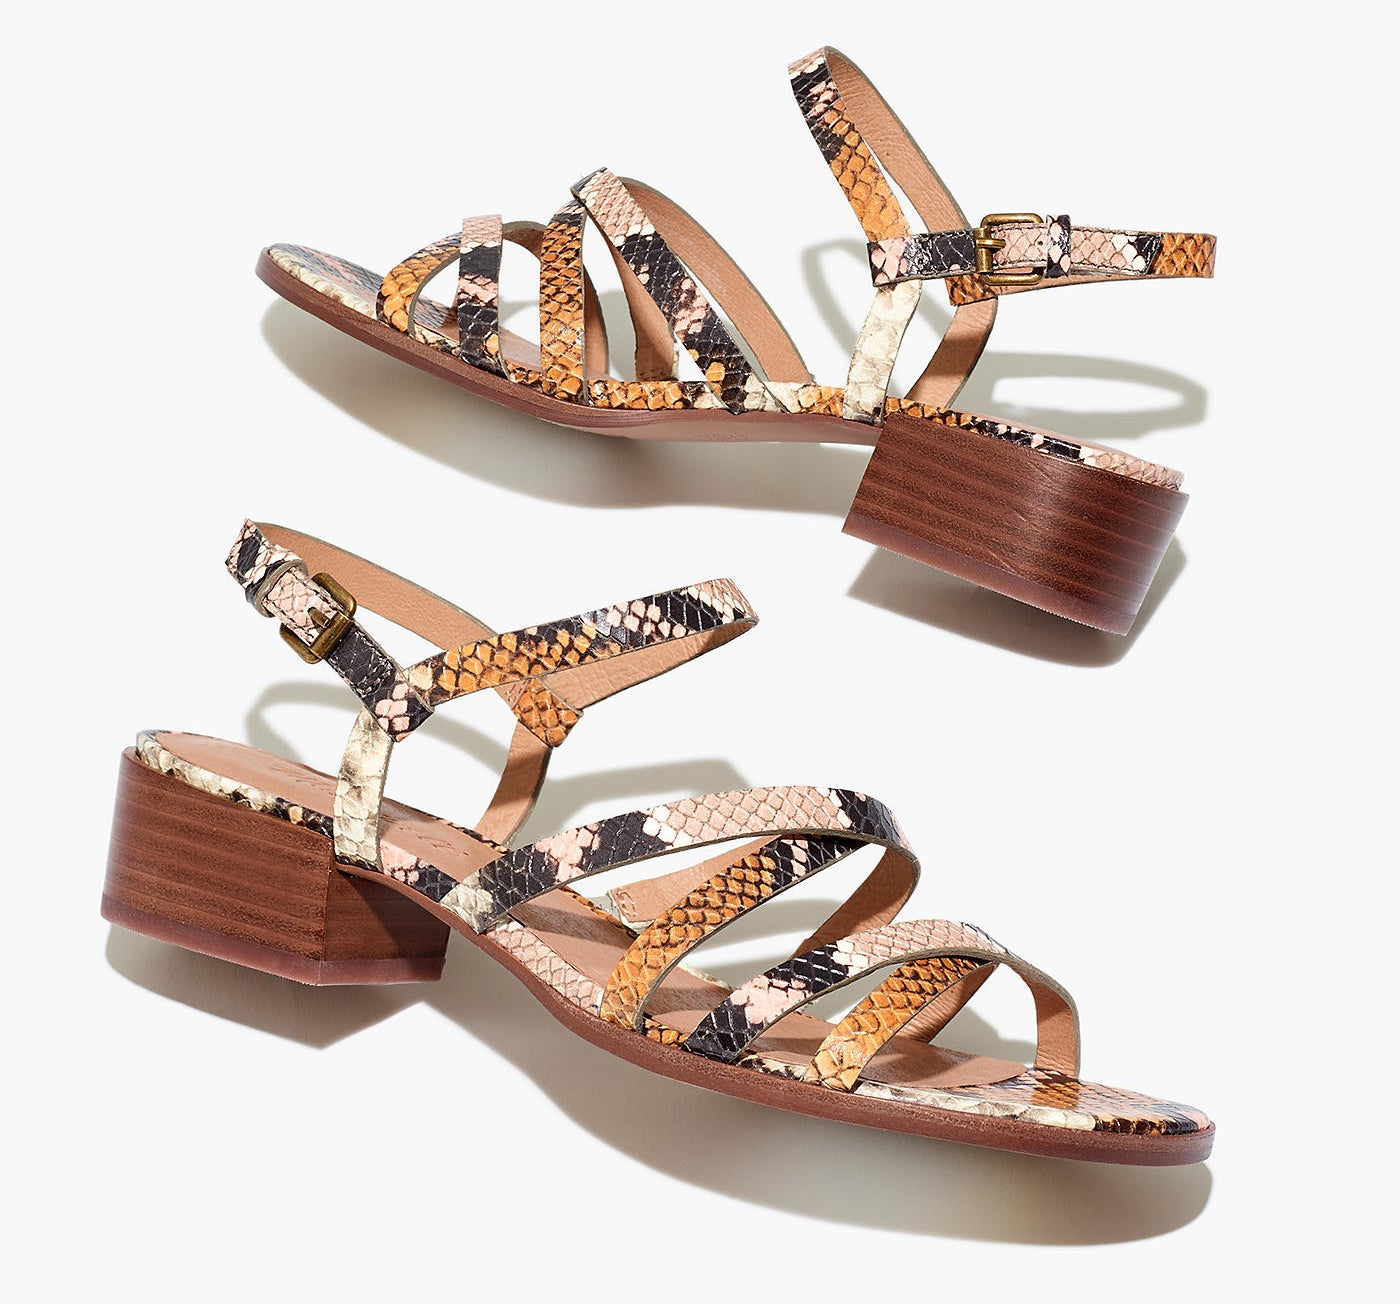 Strappy sandals with a small chunky heel and buckle back in a black, white, pink, and orange snakeskin print